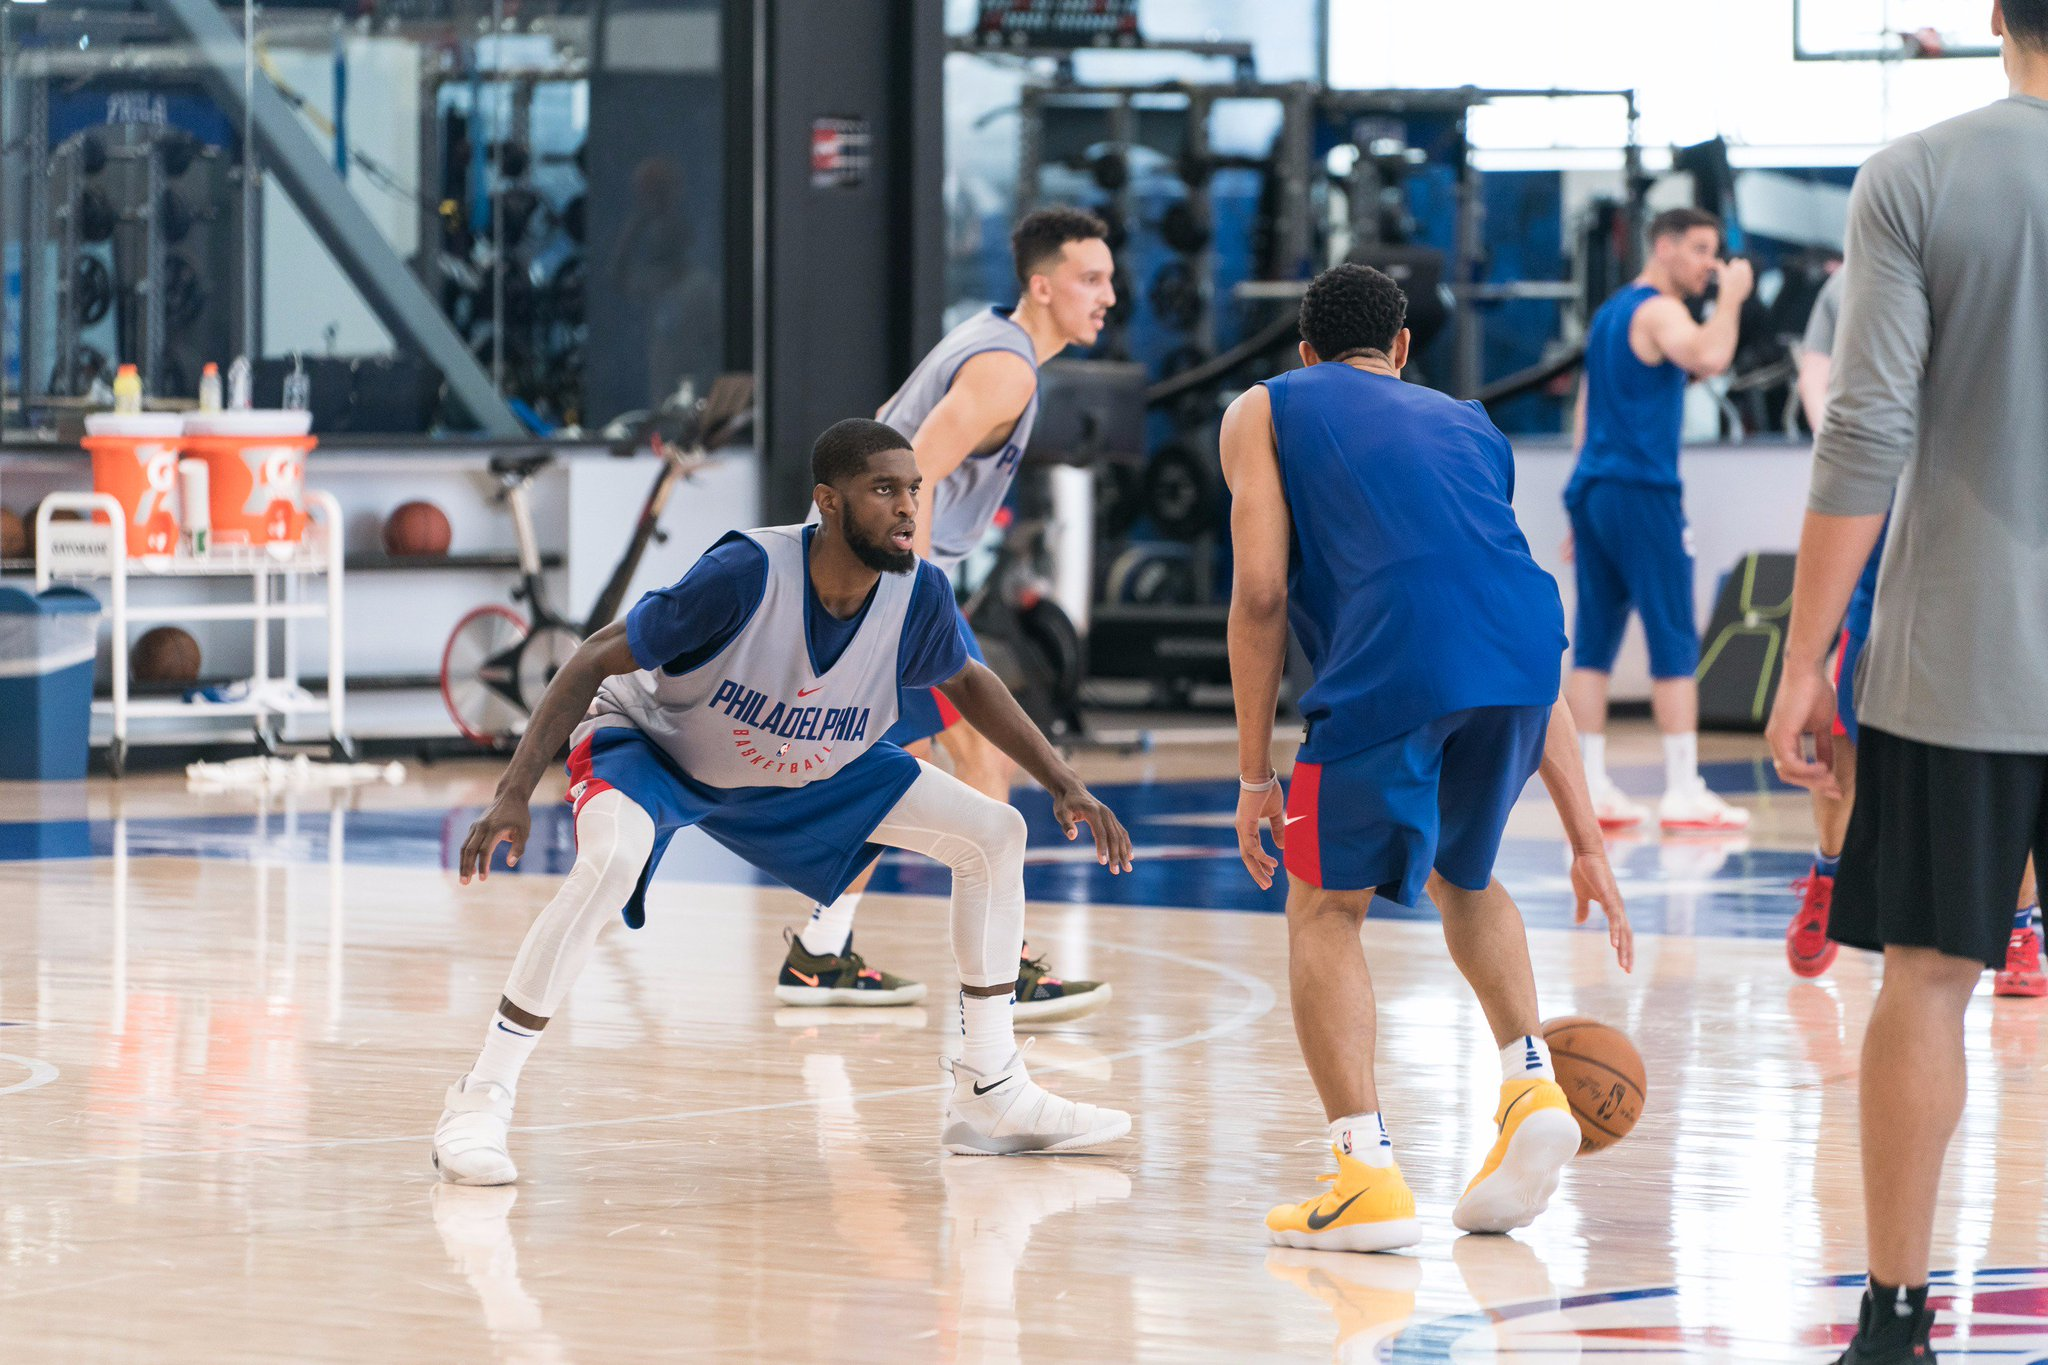 .@LaSalleMBB's @Bean_J20's hometown workout among pre-draft storylines.   �� » https://t.co/l2HTZi4W8i   #Summer76 https://t.co/doSnGsuWYS